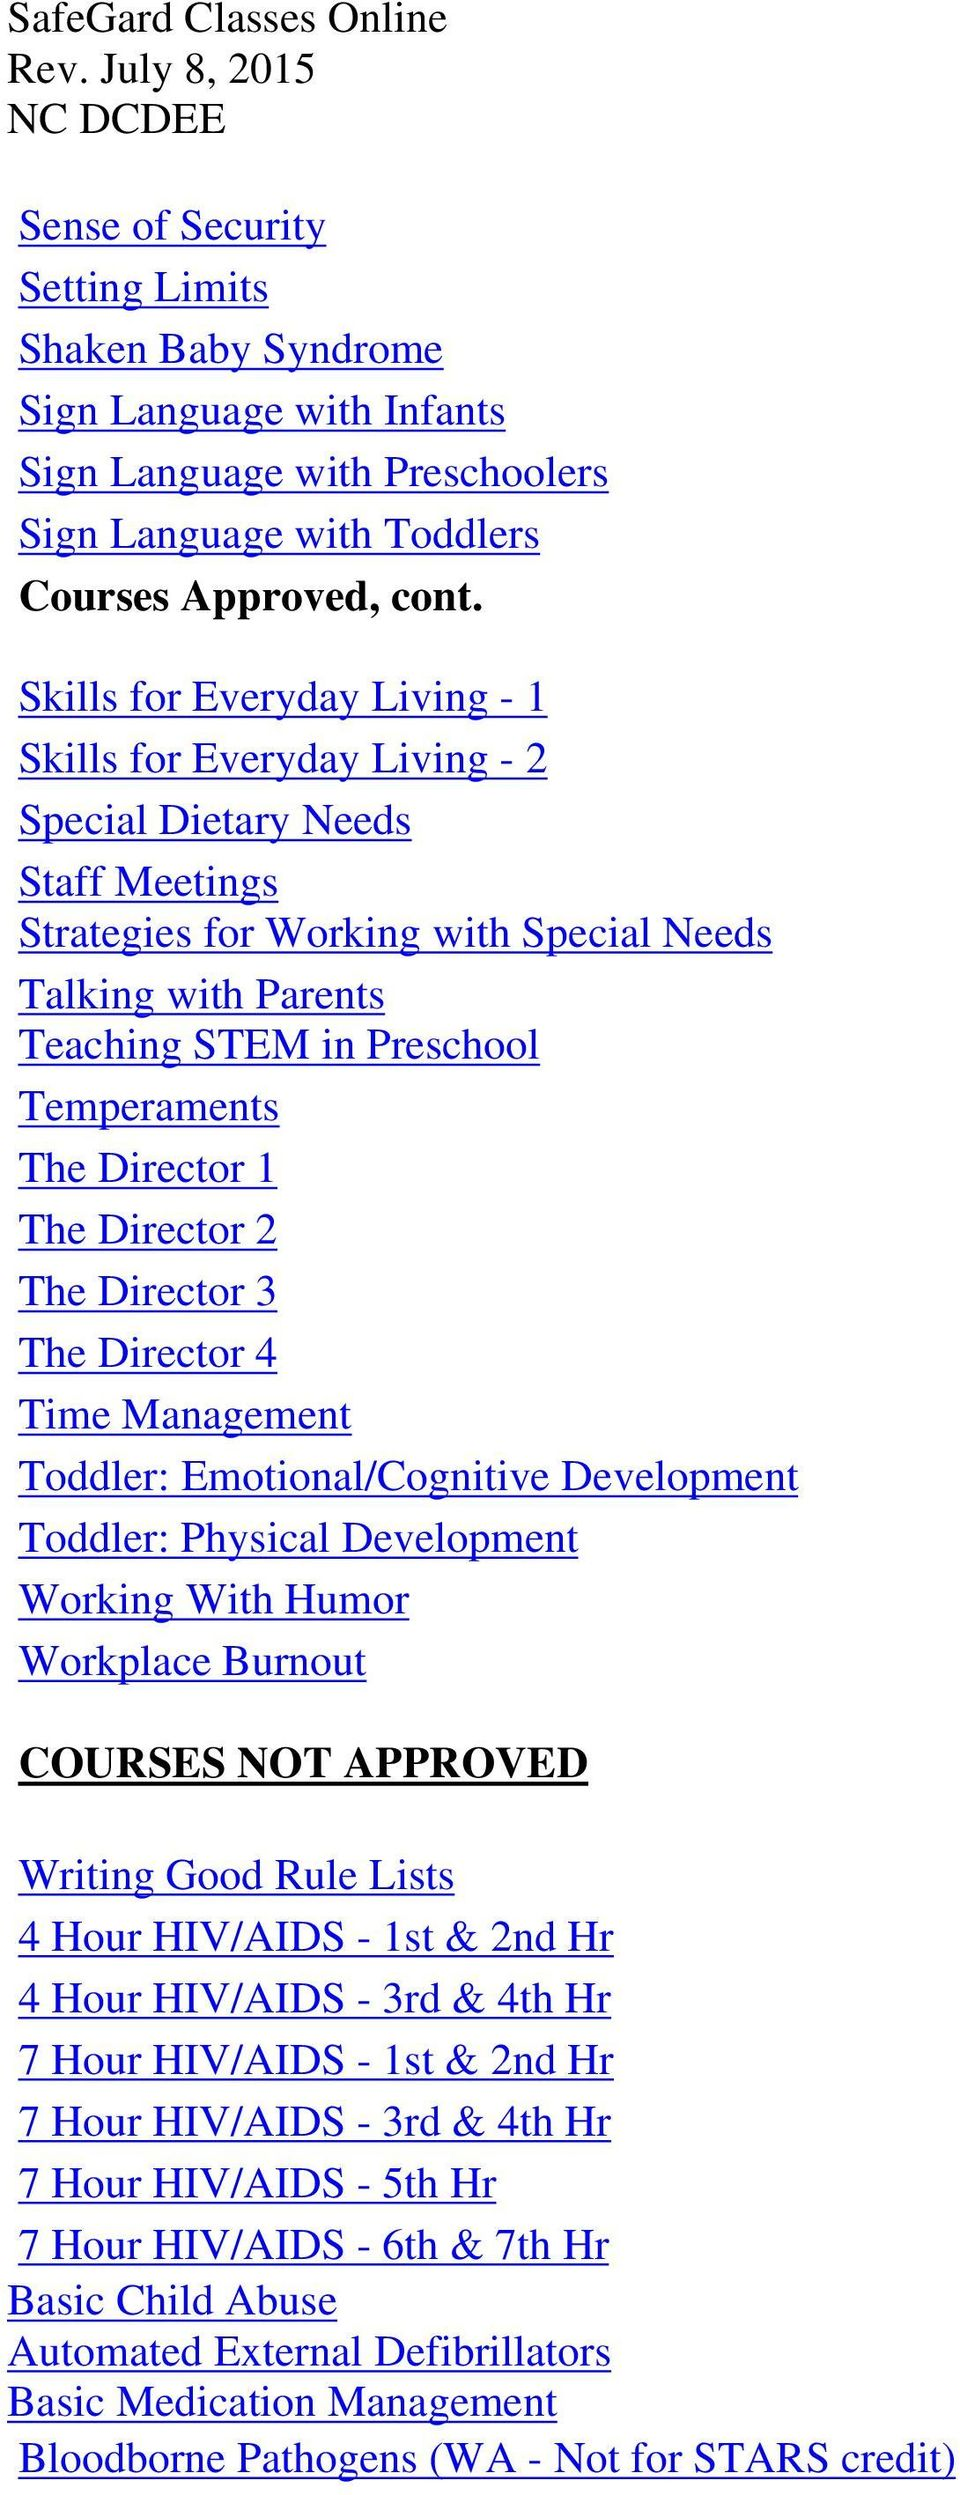 Director 4 Time Management Toddler: Emotional/Cognitive Development Toddler: Physical Development Working With Humor Workplace Burnout COURSES NOT APPROVED Writing Good Rule Lists 4 Hour HIV/AIDS -